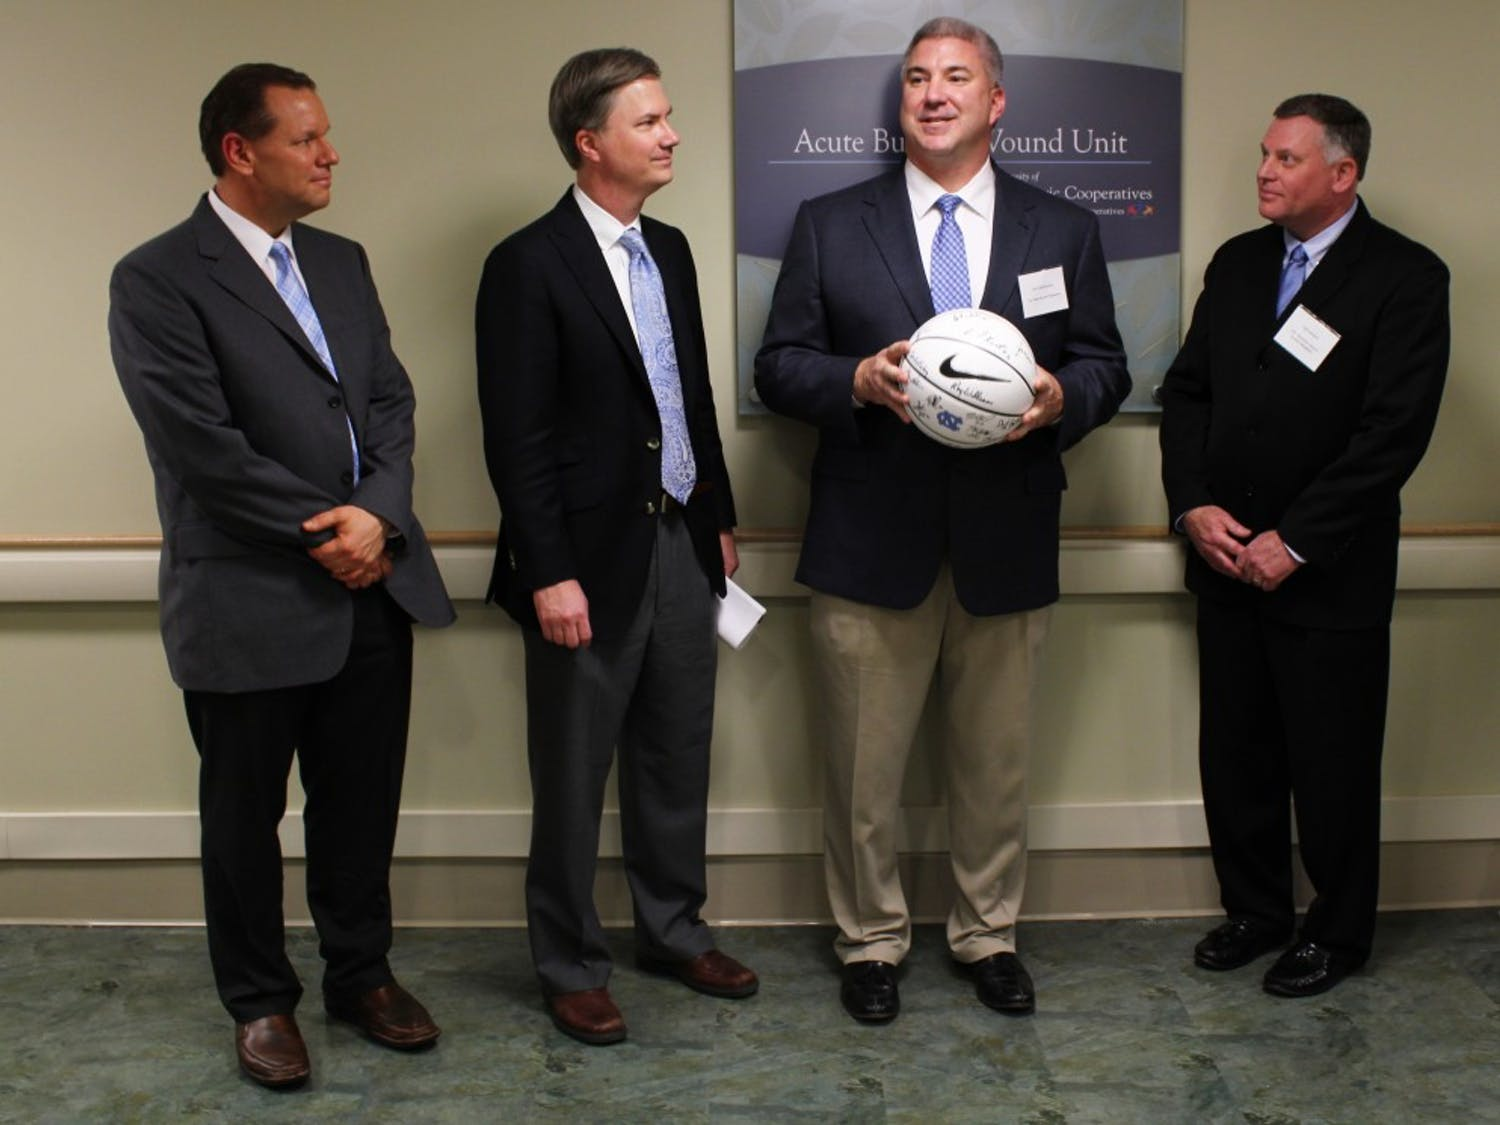 """(L to R) Dr. Bruce Cairns, director of the North Carolina Jaycee Burn Center, Chancellor Holden Thorp, associate athletic director Rick Steinbacher, and Dale Lambert, chief executive officer of Randolph Electric Membership Corporation, helped present the new """"Acute Burn and Wound Unit"""" , part of UNC Hospital's East Wing, on Thursday afternoon.The basketball held by Steinbacher was signed by Roy and basketball players (double check w/ writer). Presented to nurse managers of burn unit."""